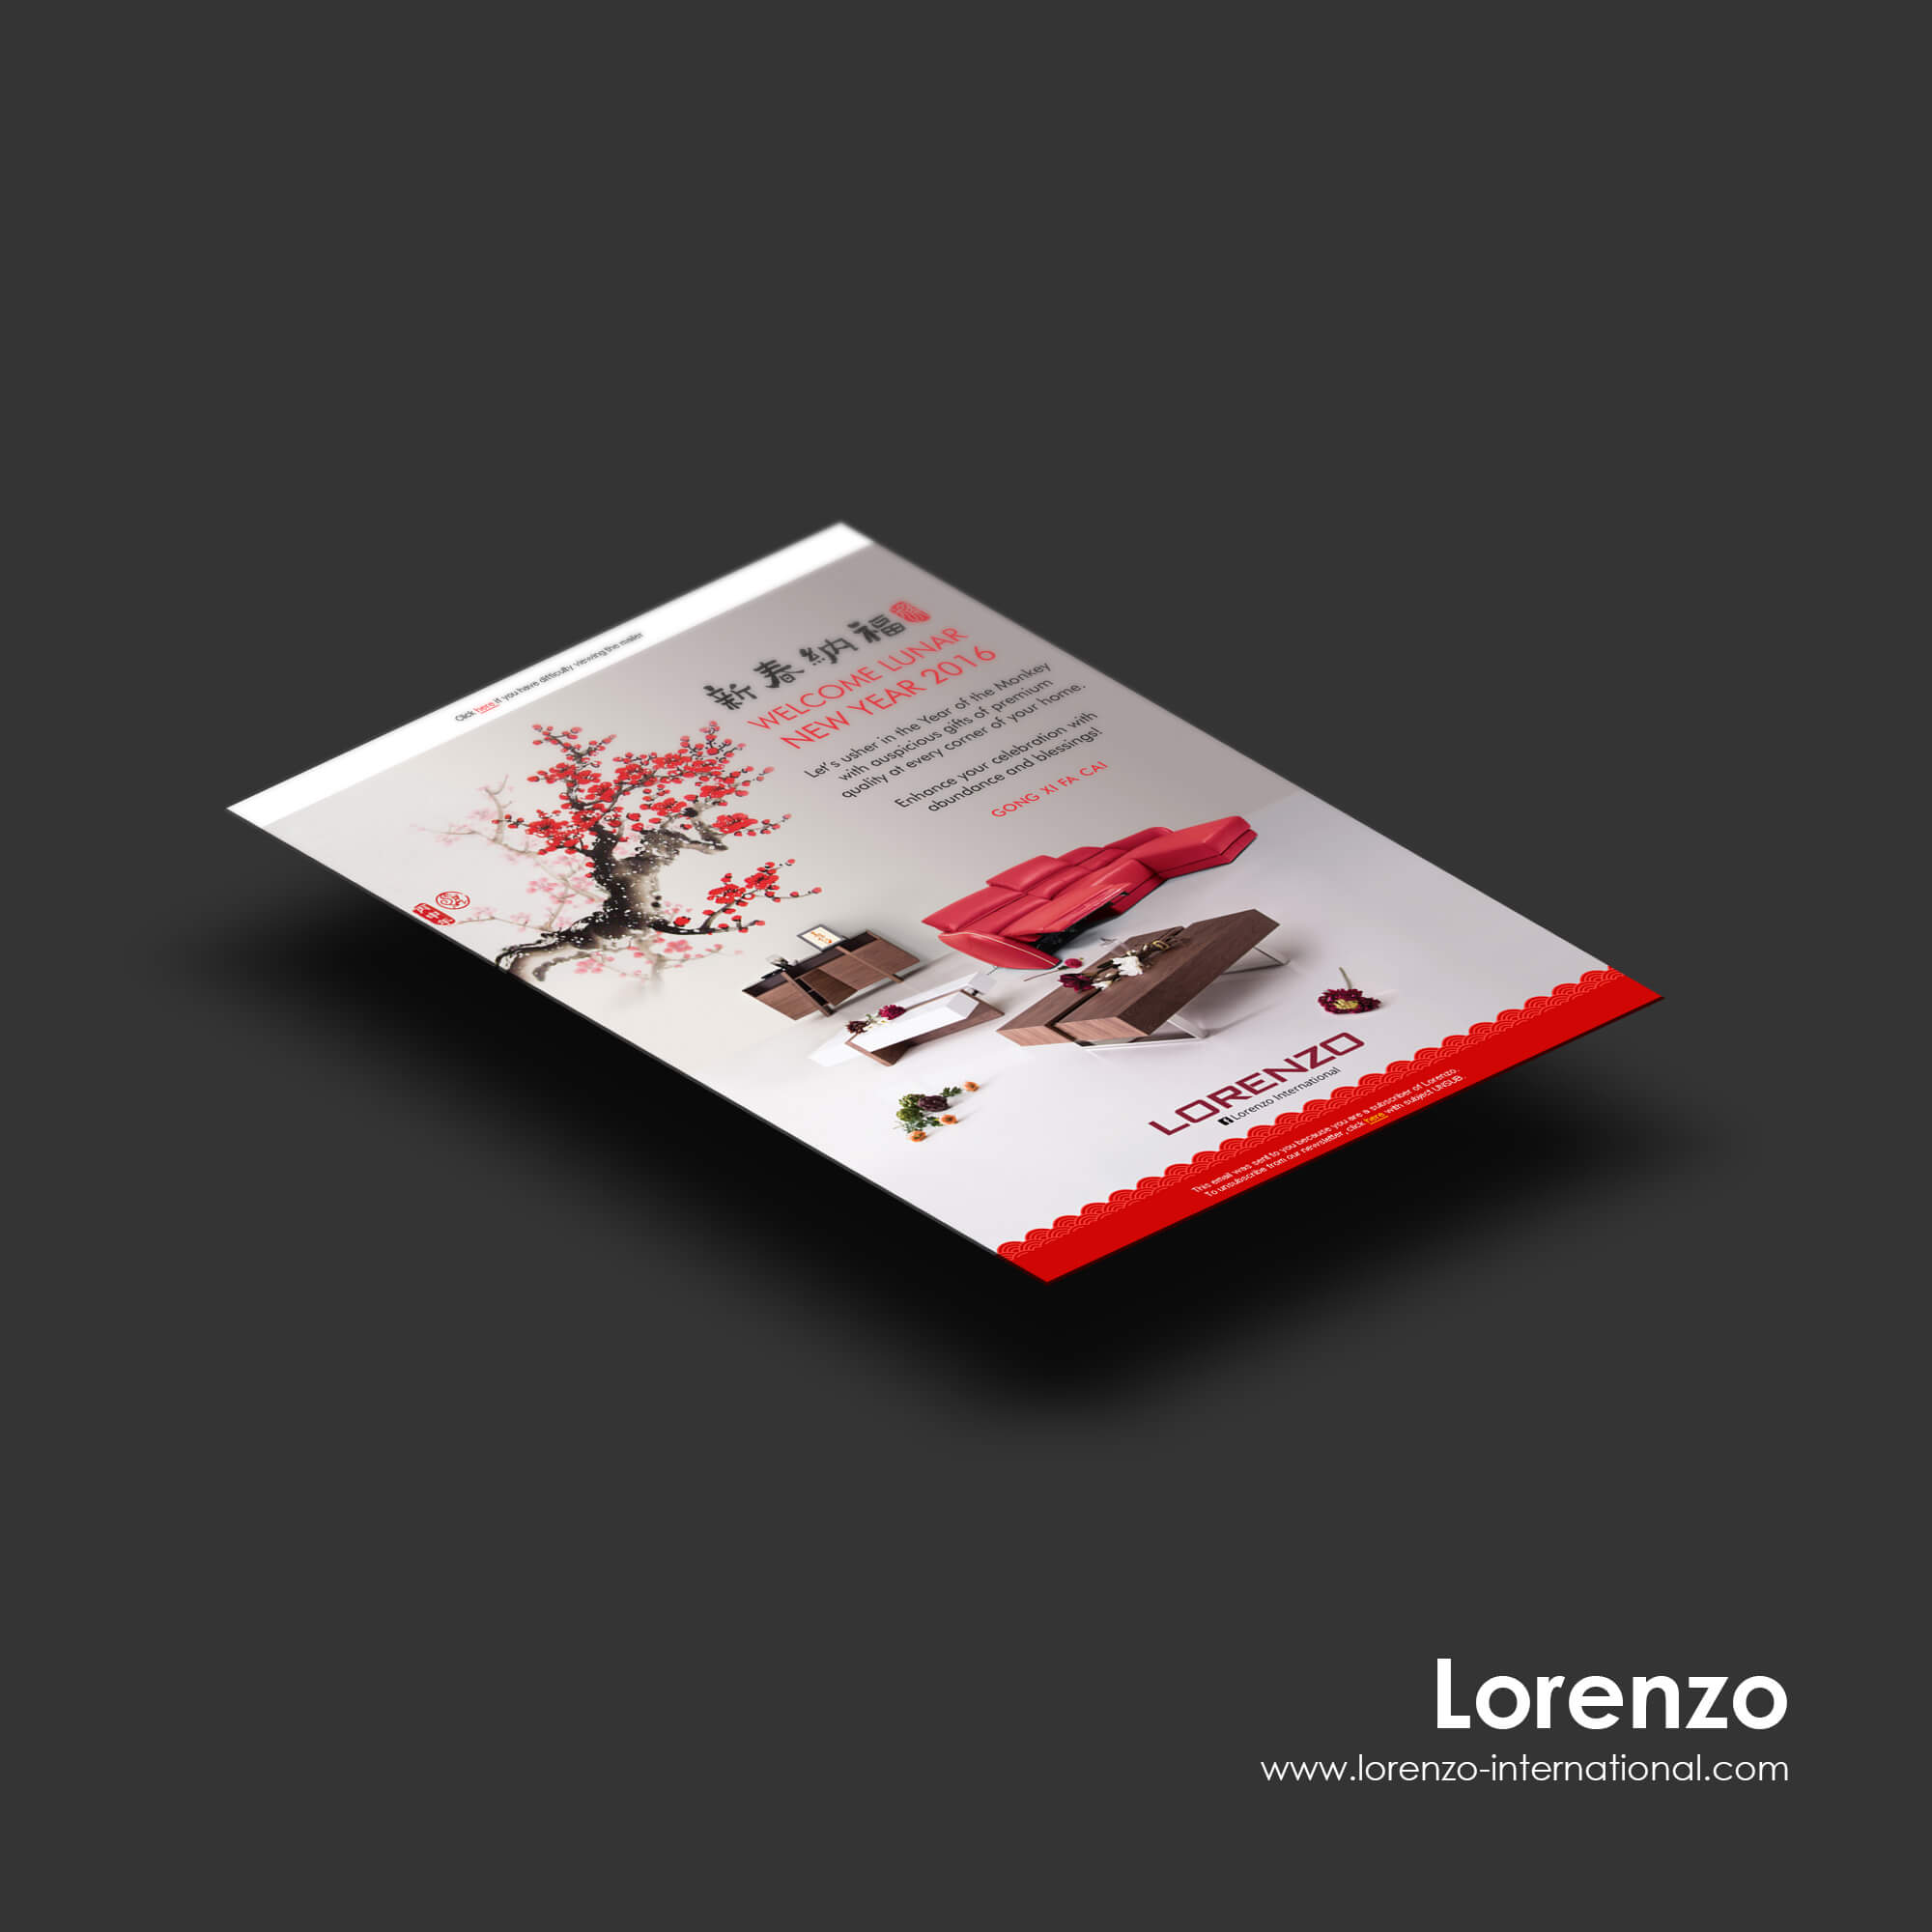 Singapore best web design lorenzo edm design